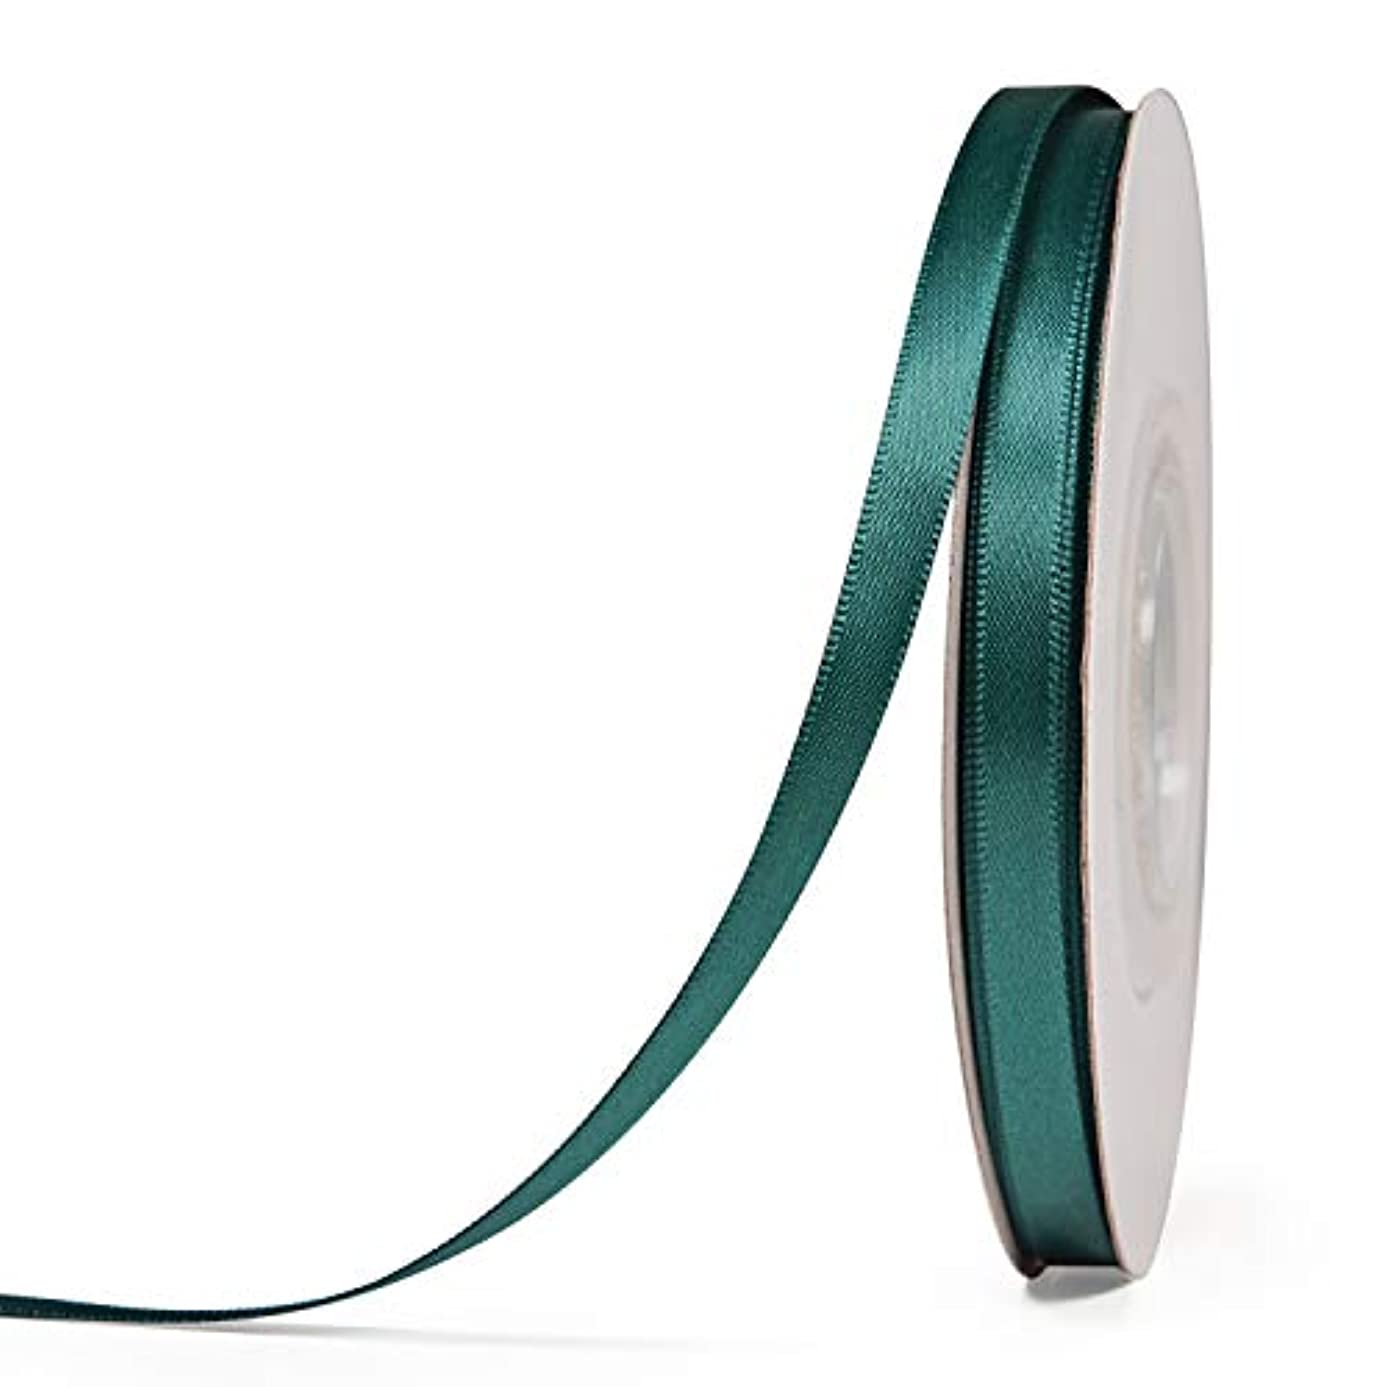 YAMA Double Face Satin Ribbon Roll - 1/4 Inch 25 Yards for Gift Wrapping Ribbons Decorations DIY Crafts Arts, Teal